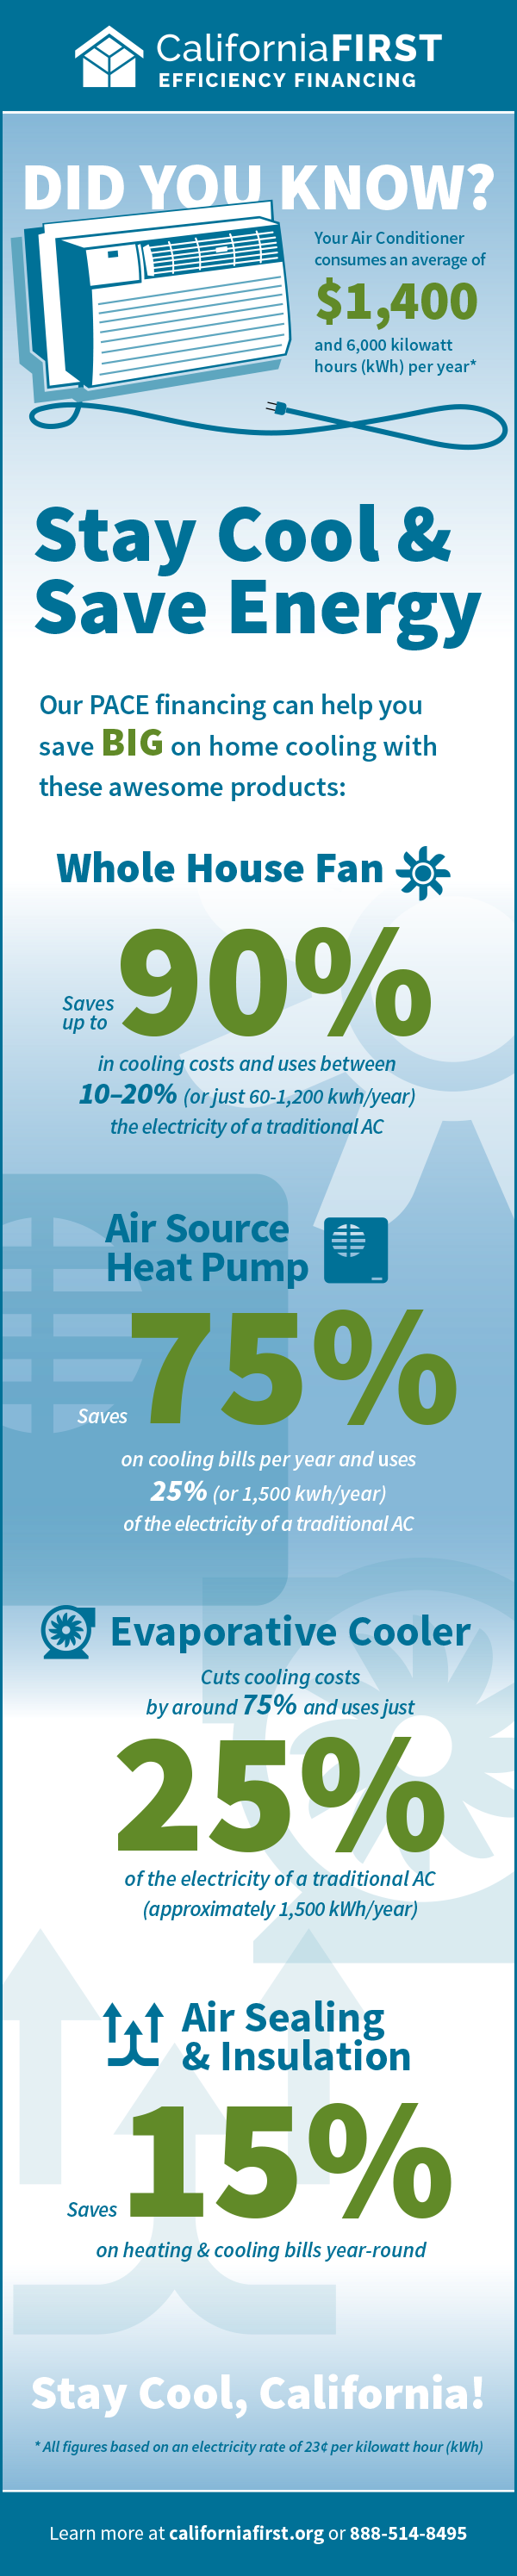 Your Air Conditioner consumes an average of 1,400 per